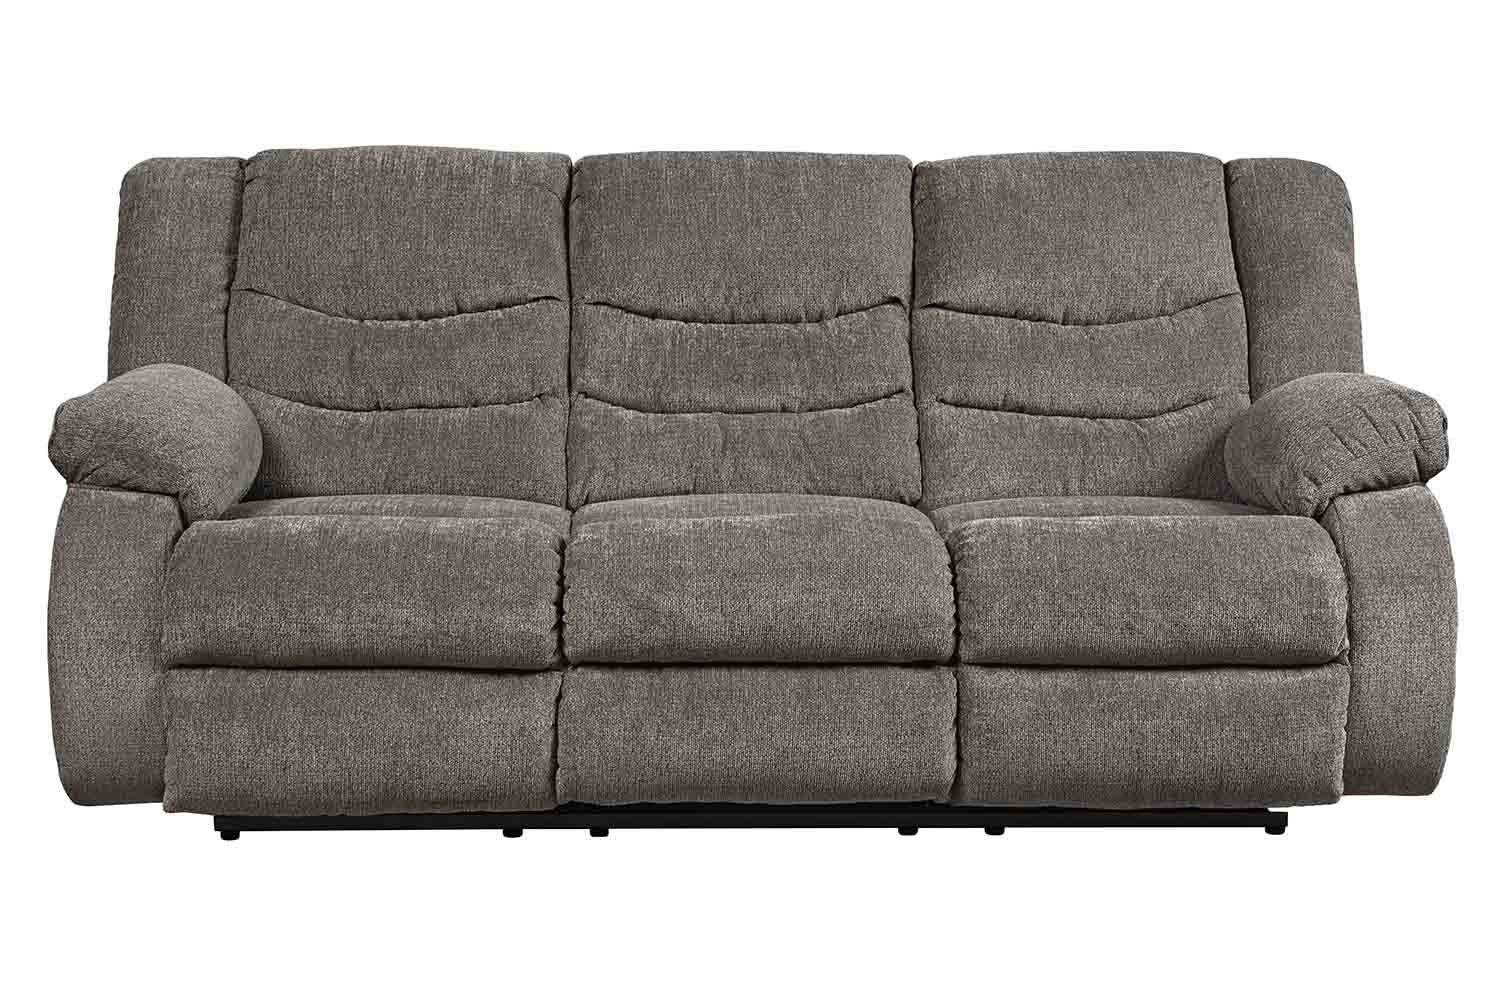 Sofa Mart Spokane Valley Wa West Coast S Home Furniture Store Mor Furniture For Less